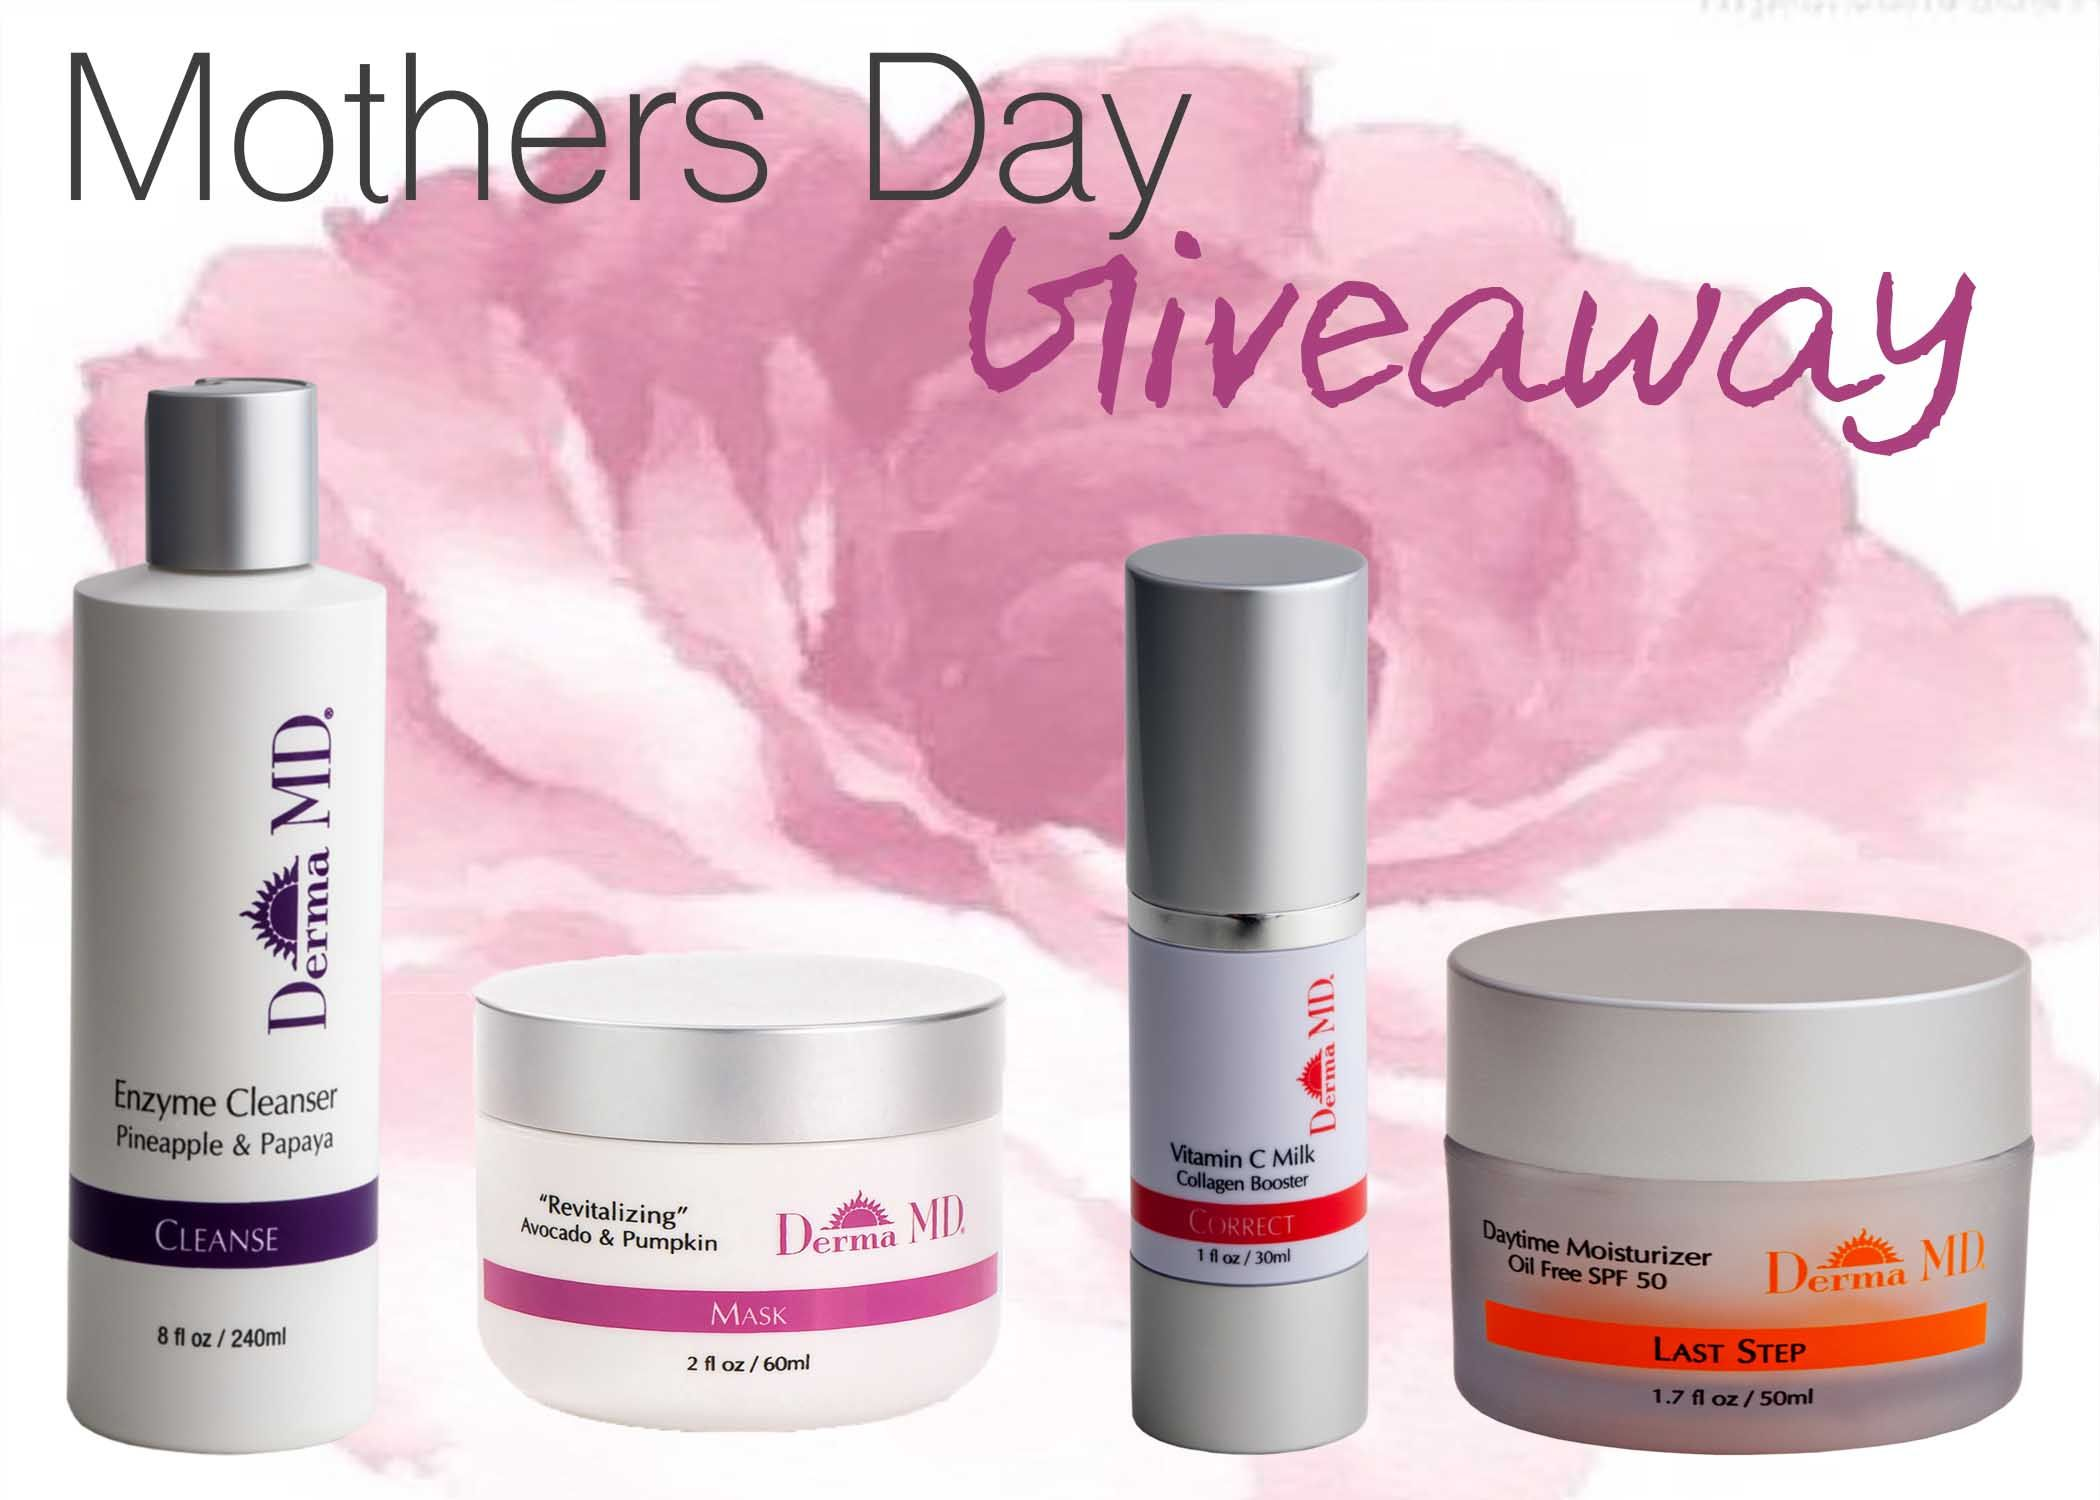 Enter to win one of 3 Skincare kits of our favorite products for all the Mom's out there! Valued at $270- Enter from our Facebook page. Follow Link